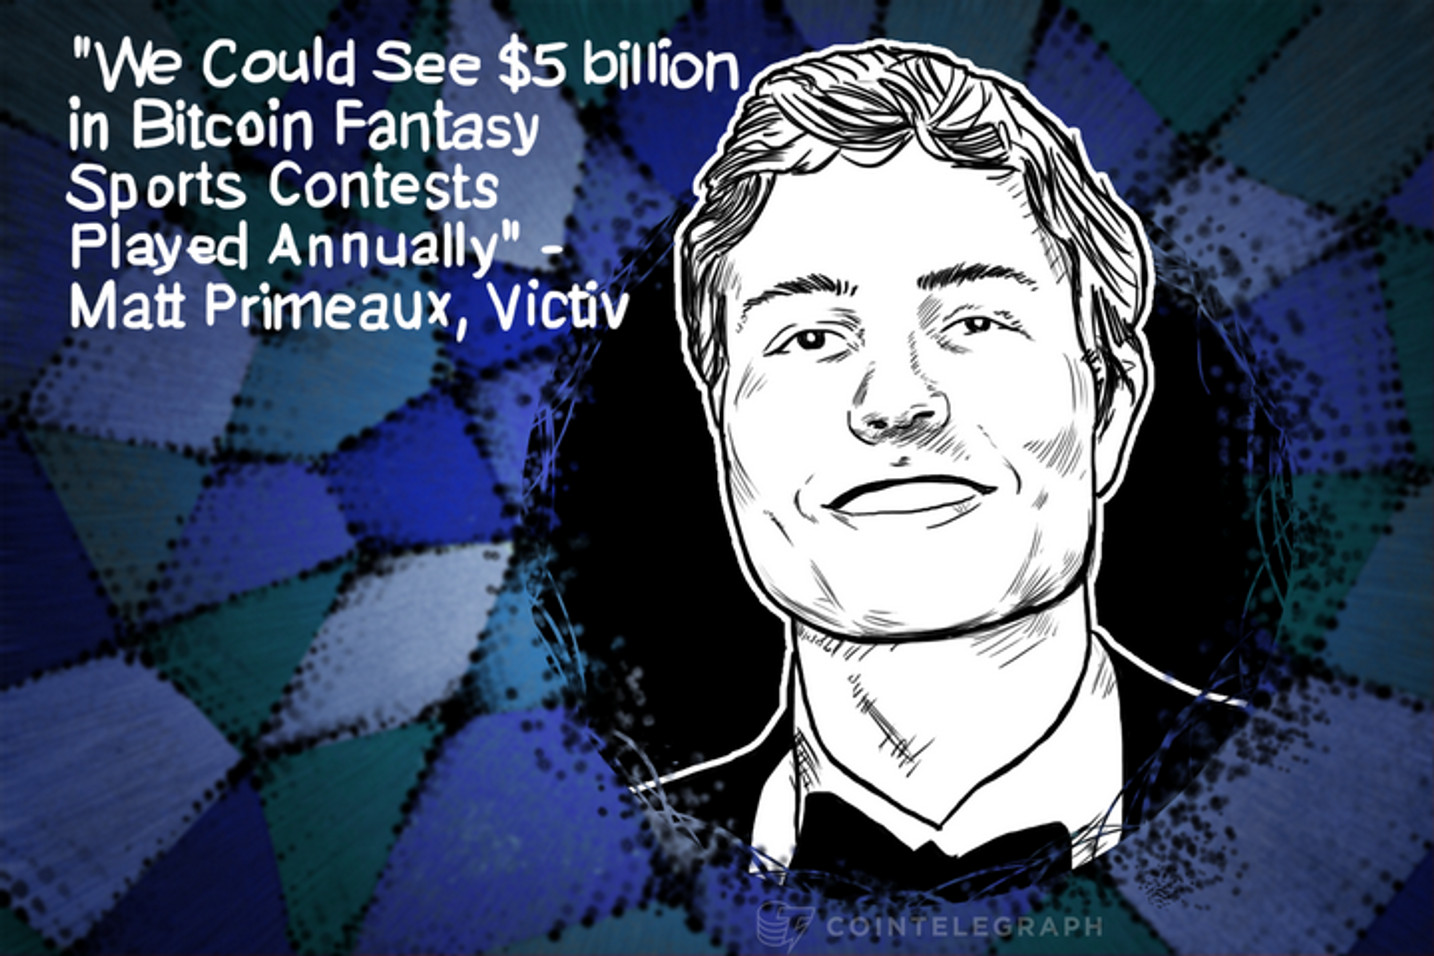 """Victiv Brings Bitcoin to a Potentially $5 Billion Market"" - Matt Primeaux, Victiv"